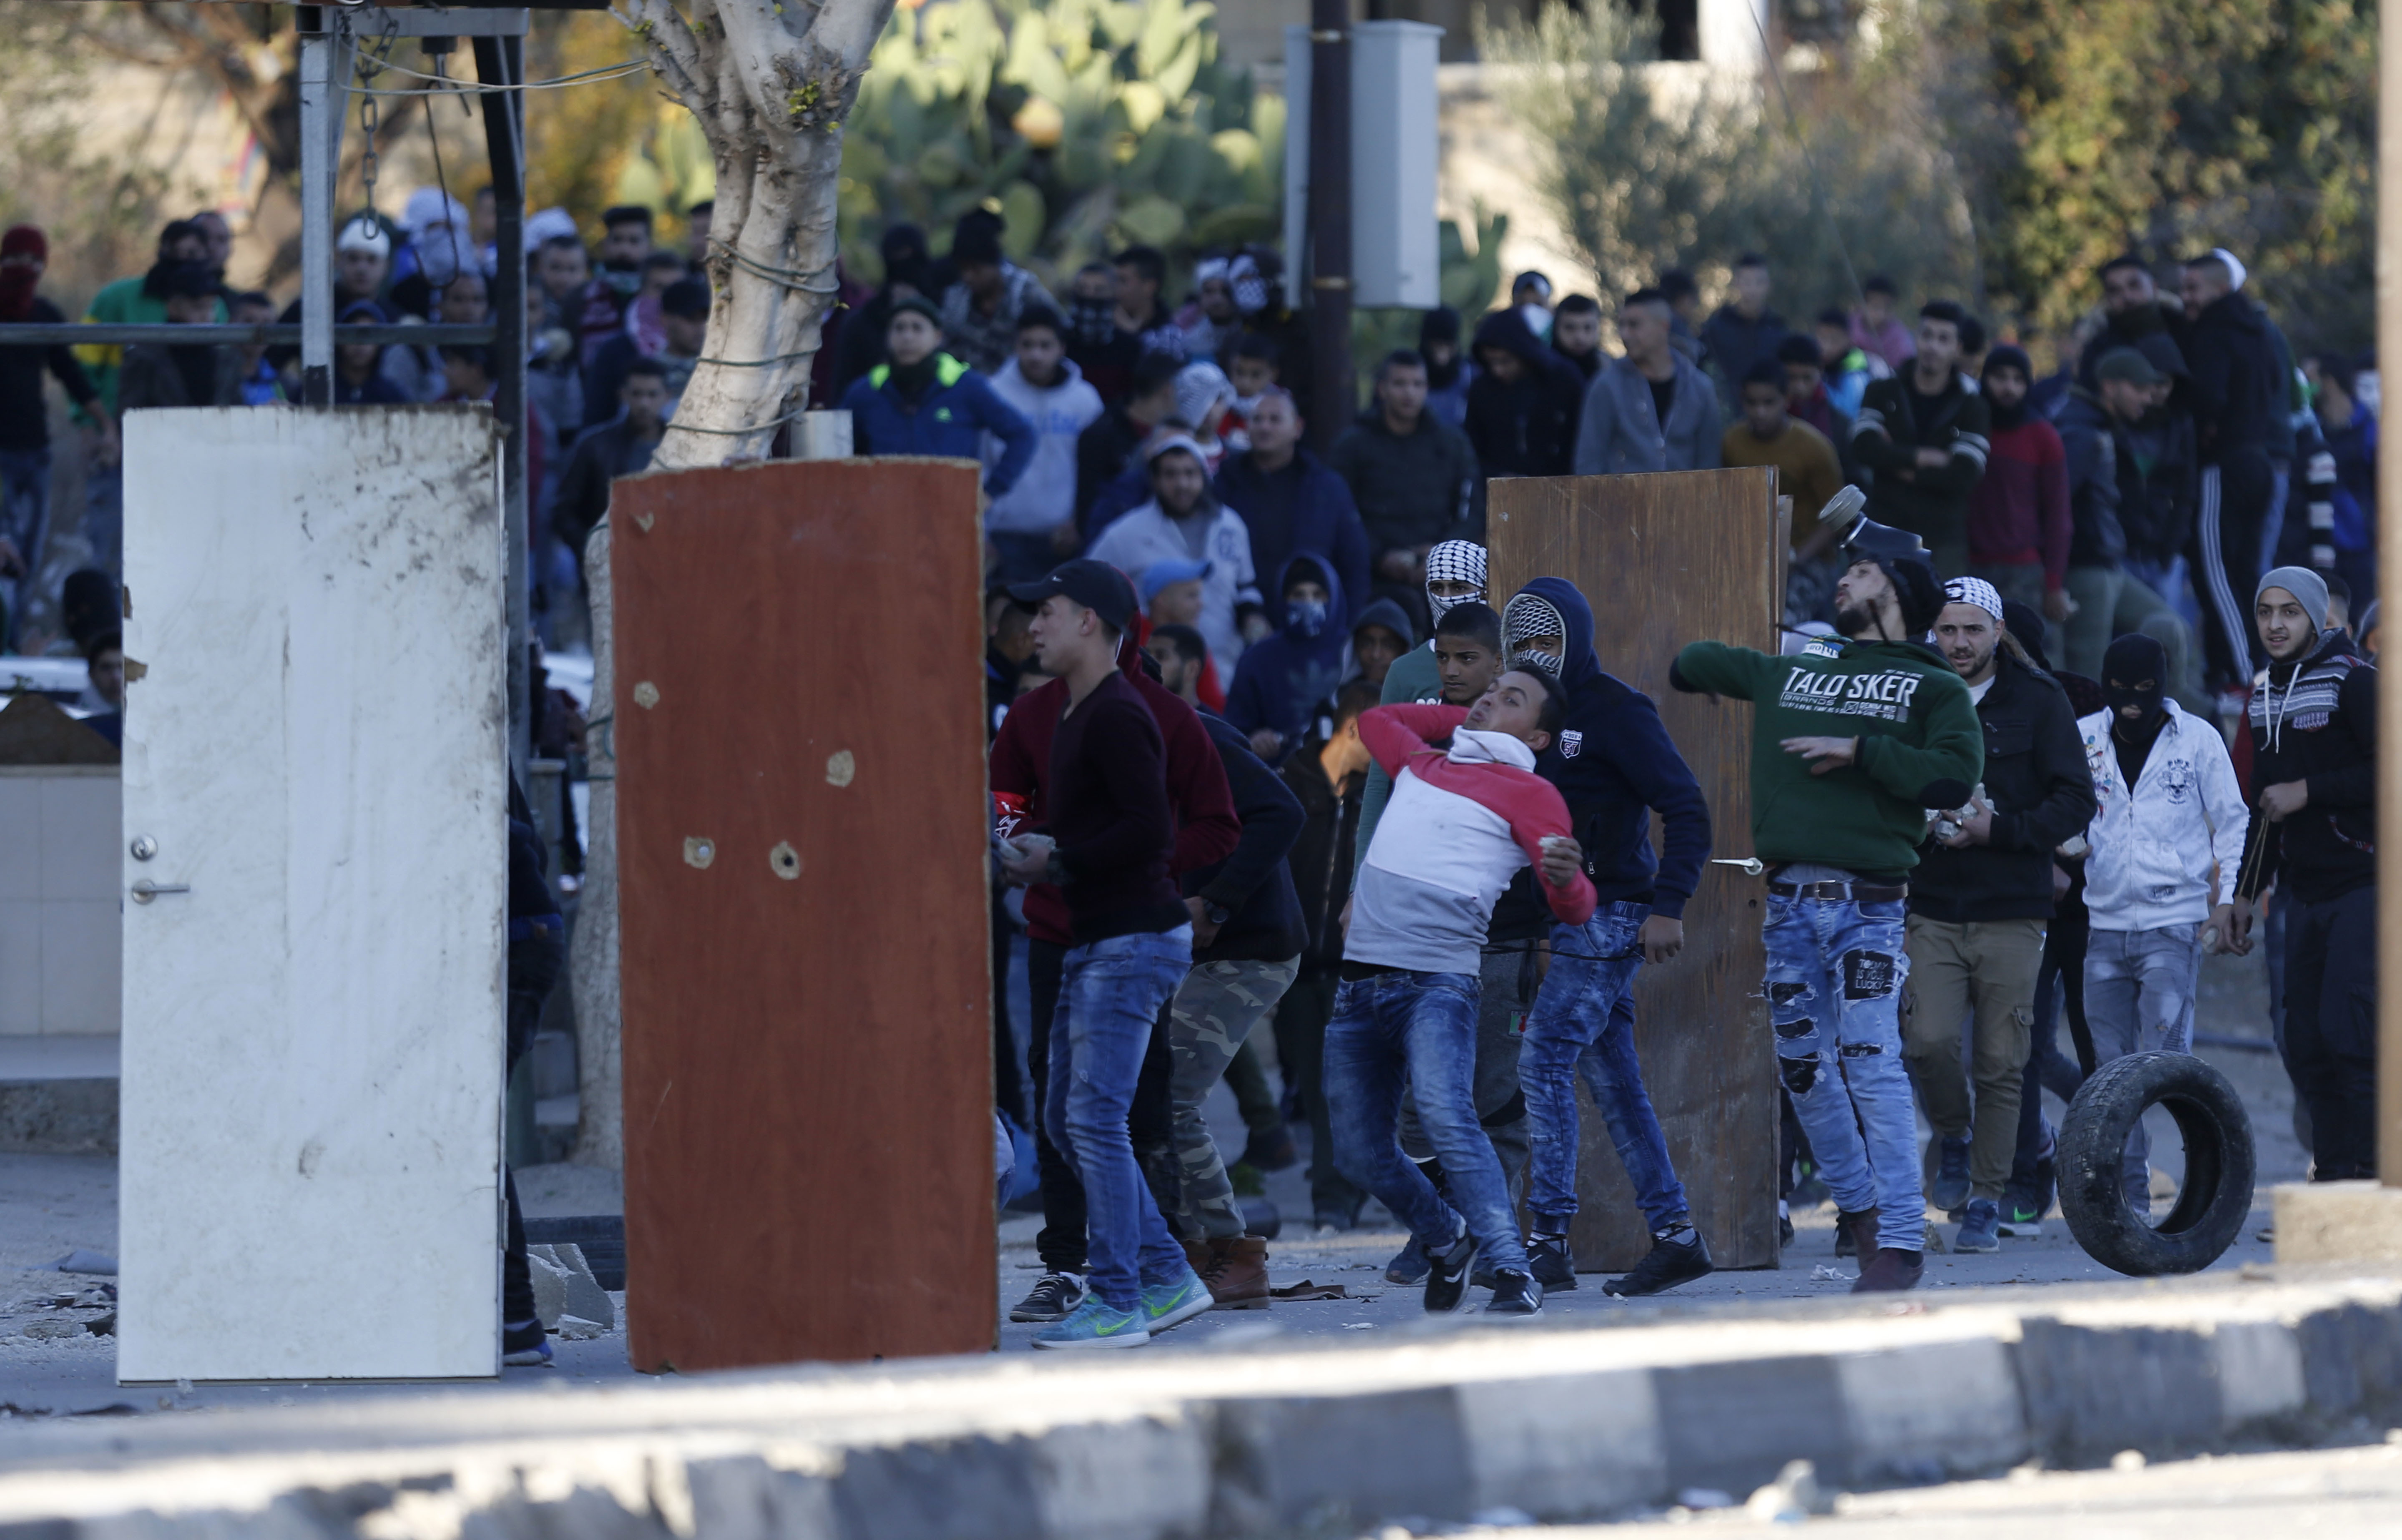 Palestinians clash with Israeli troops during a protest against U.S. President Donald Trump's decision to recognize Jerusalem as the capital of Israel in the West Bank City of Nablus, Dec. 8, 2017.